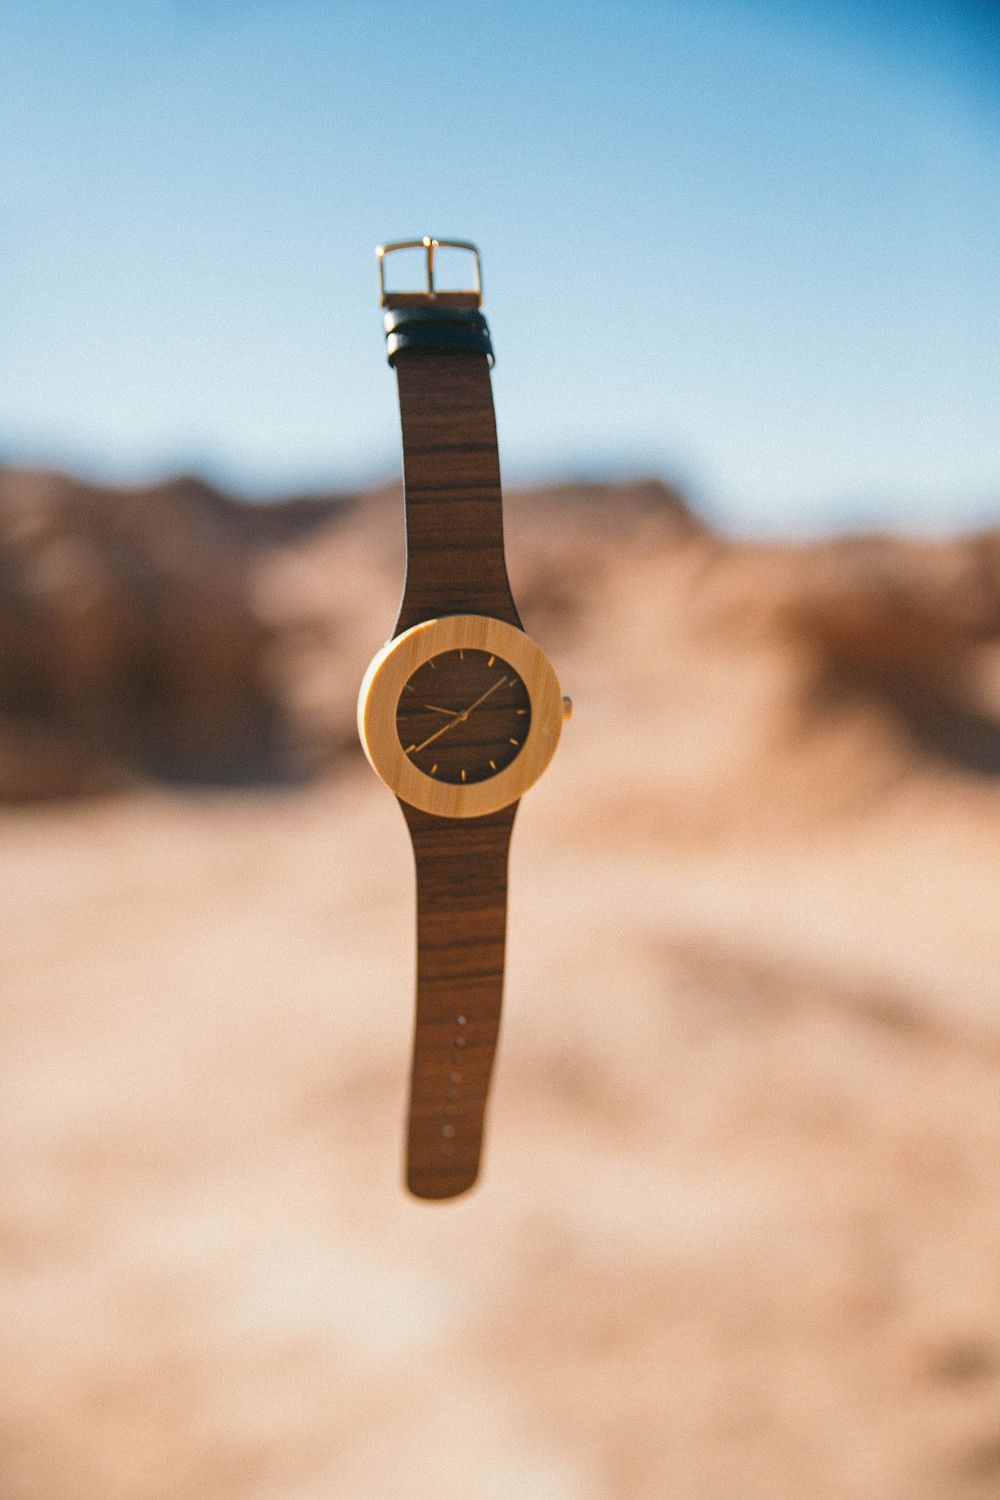 watch with leather strap and gold face floating above a desert scene